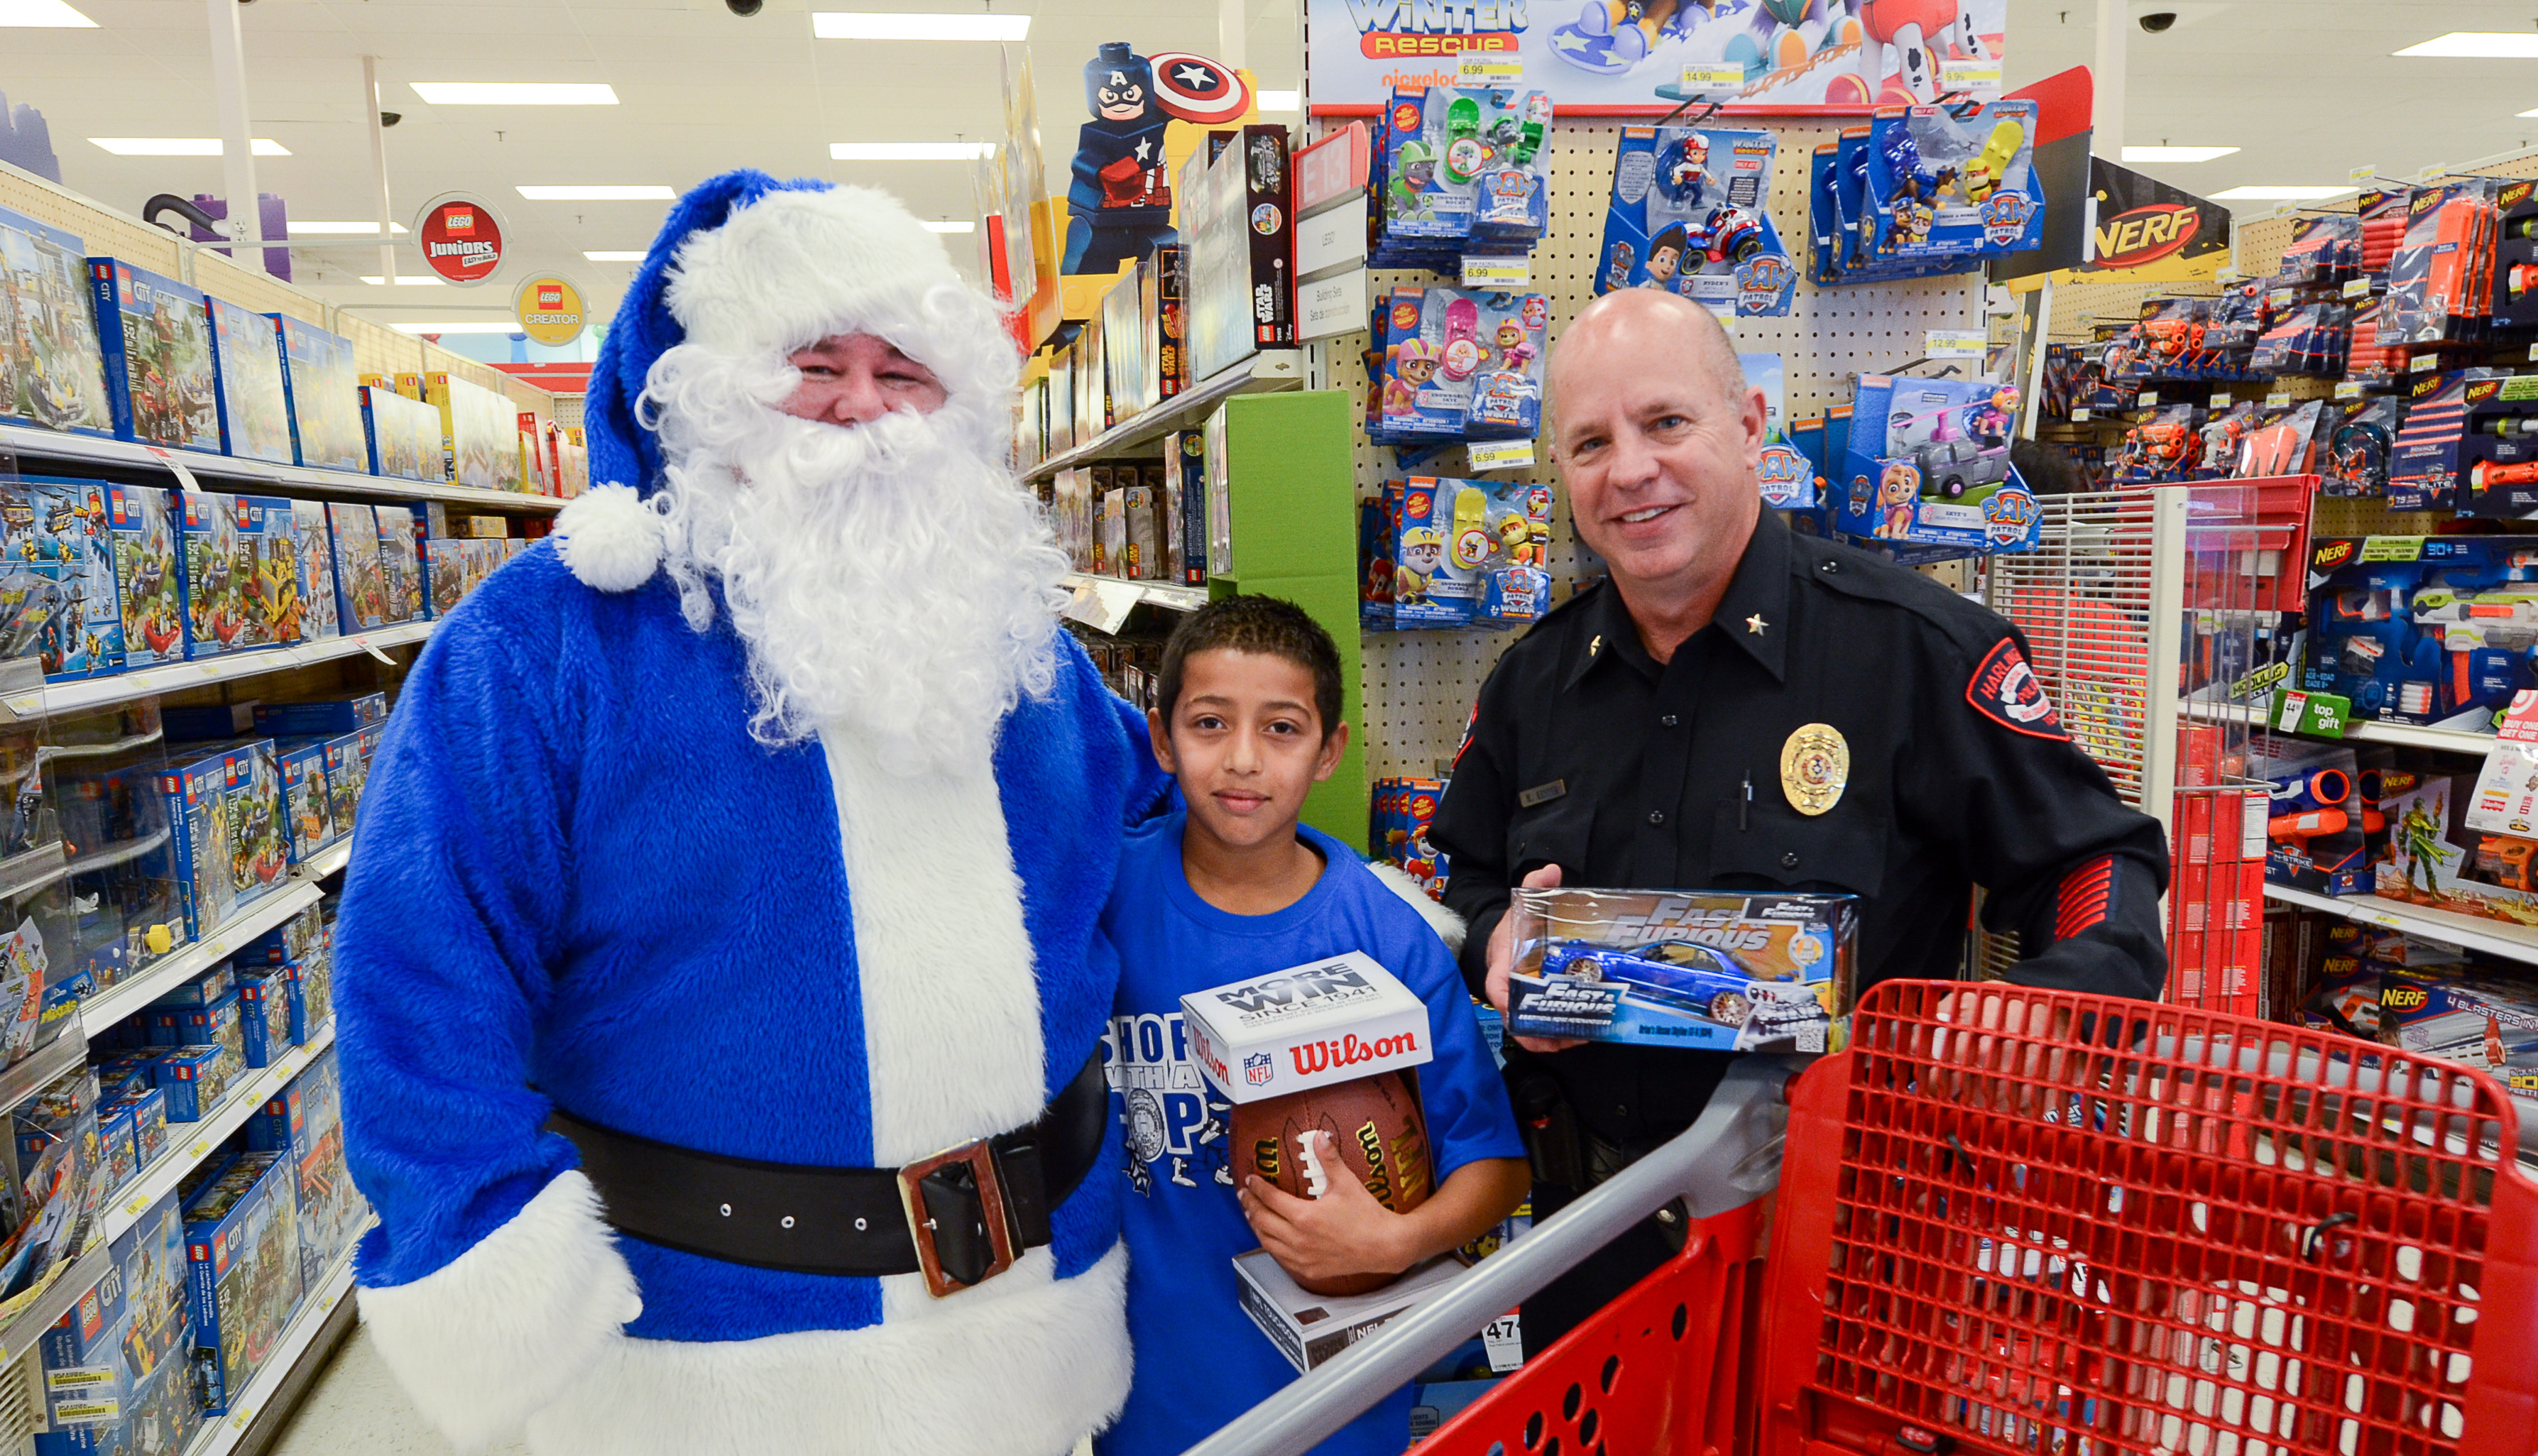 HPD spreads Christmas cheer through first Shop with a Cop event